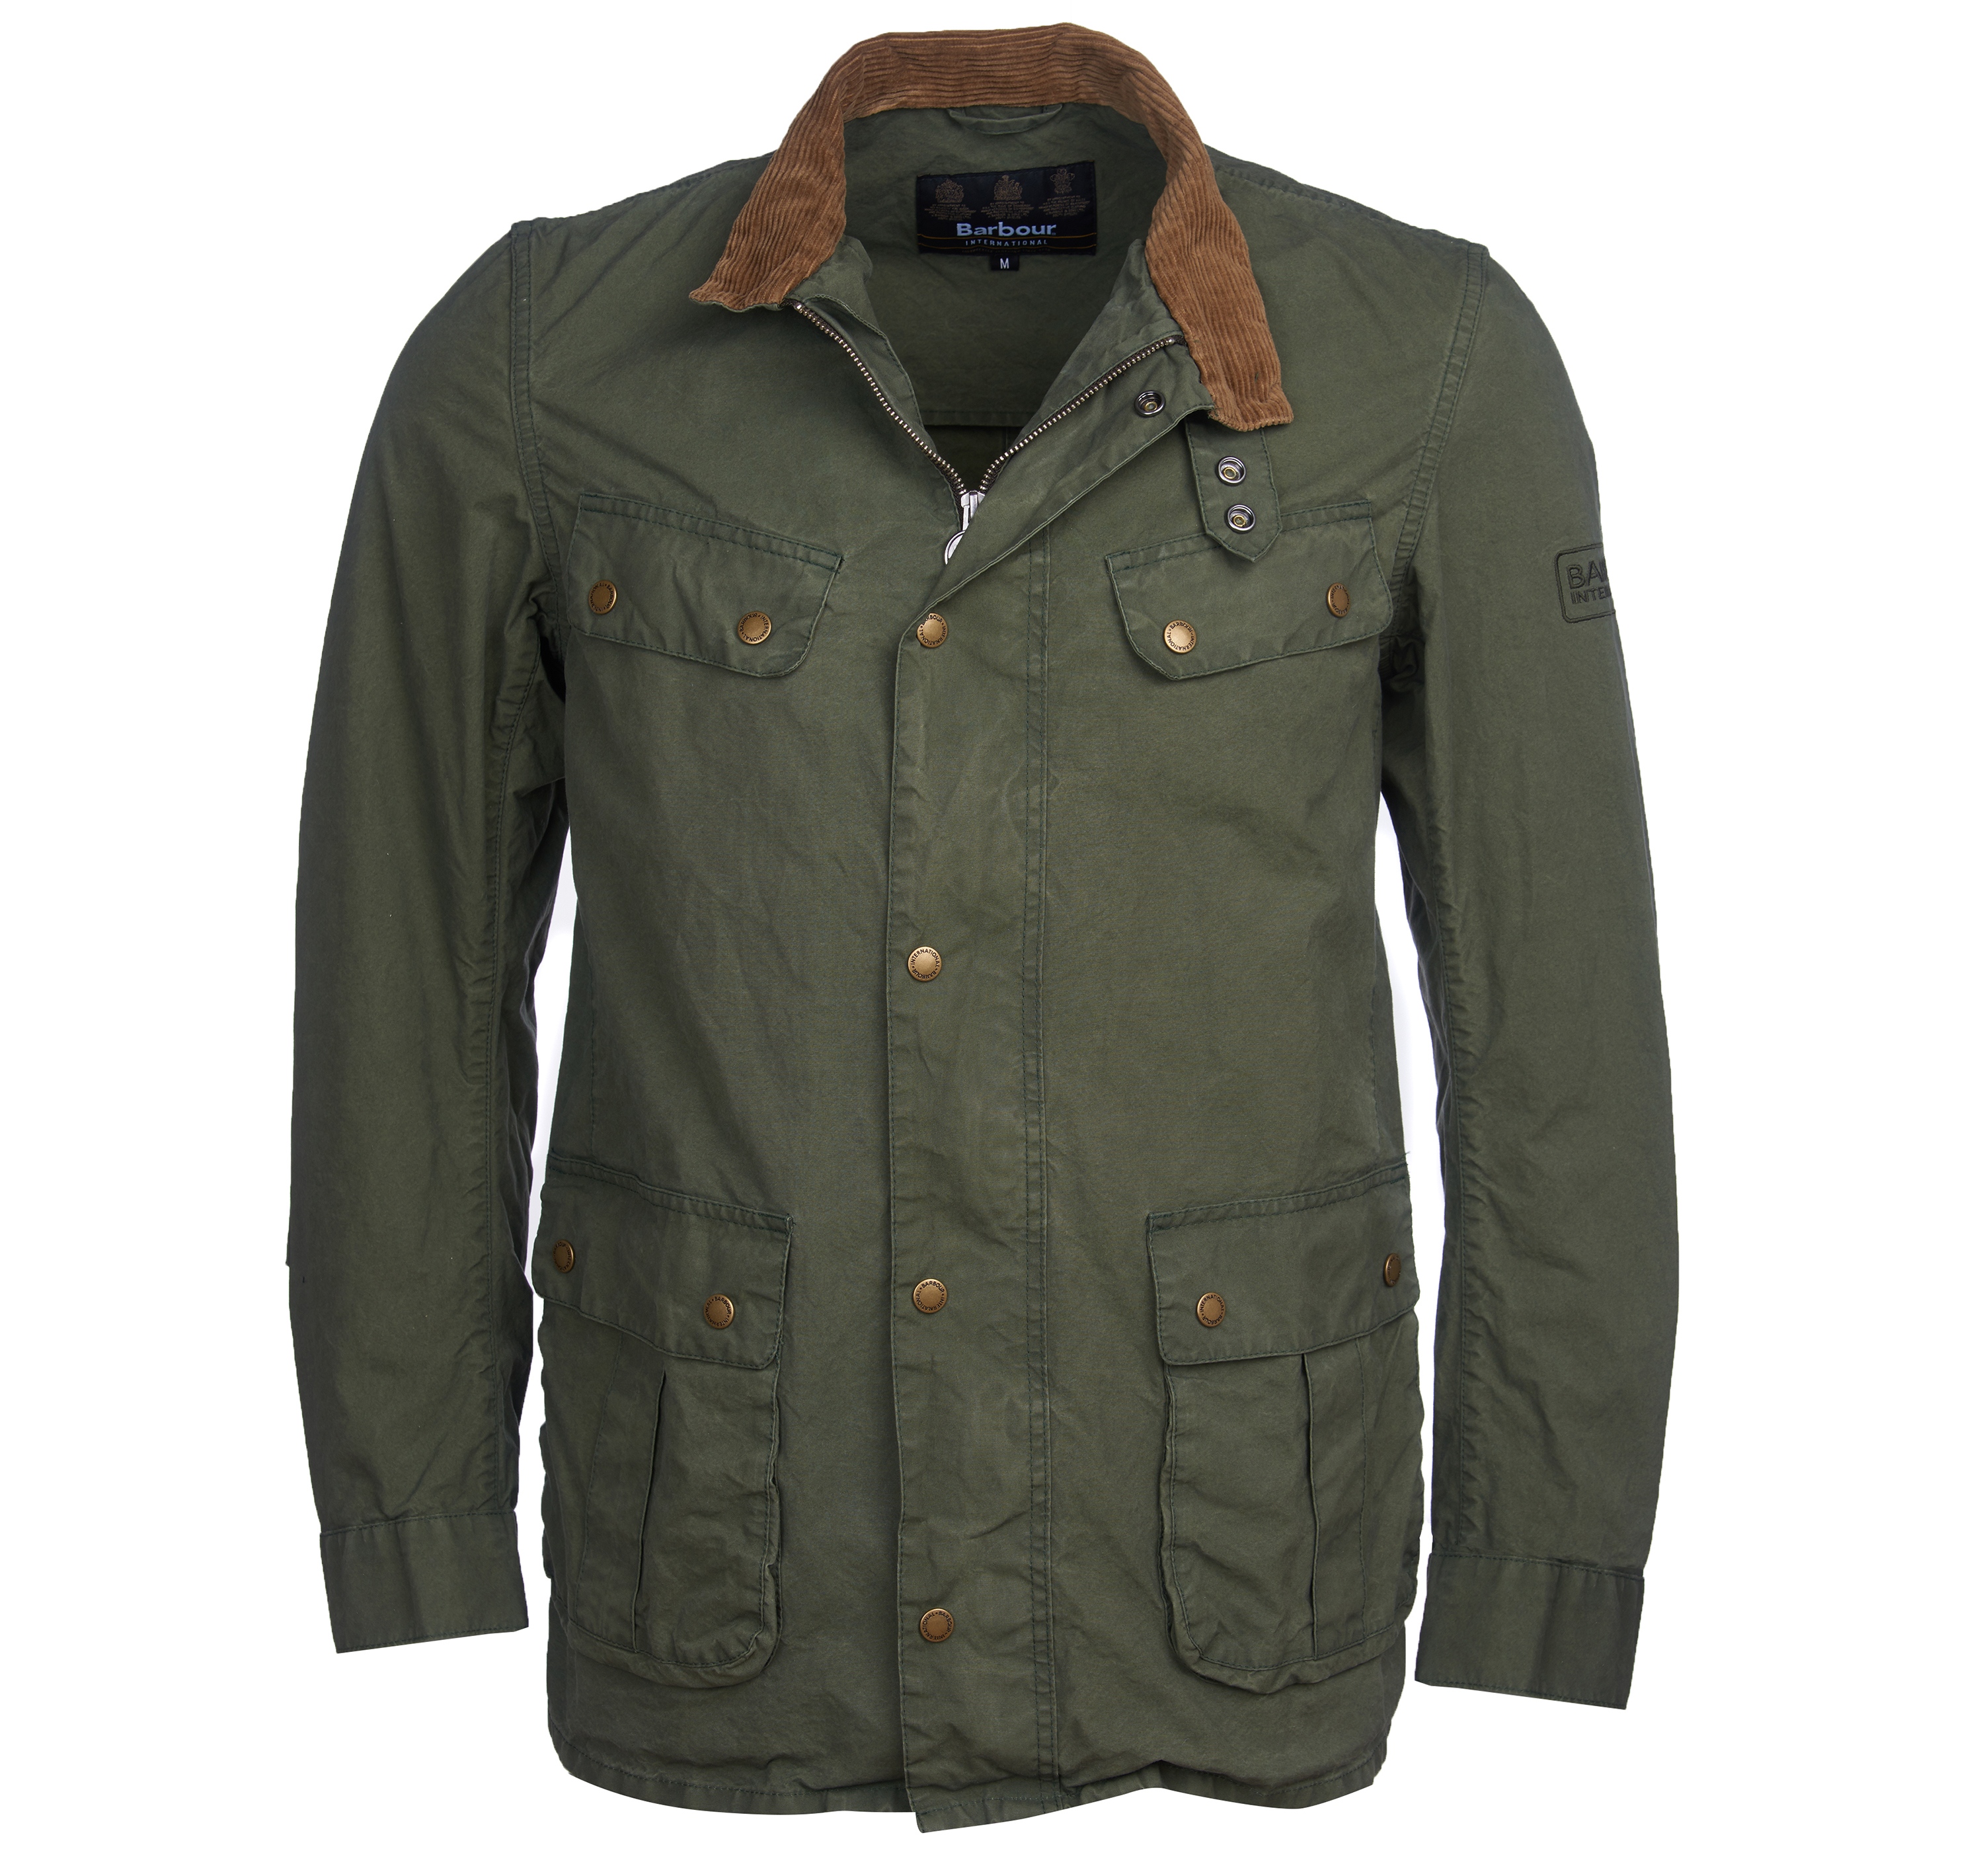 B. Intl. Coloured Duke Casual Jacket Green Tailored Fit